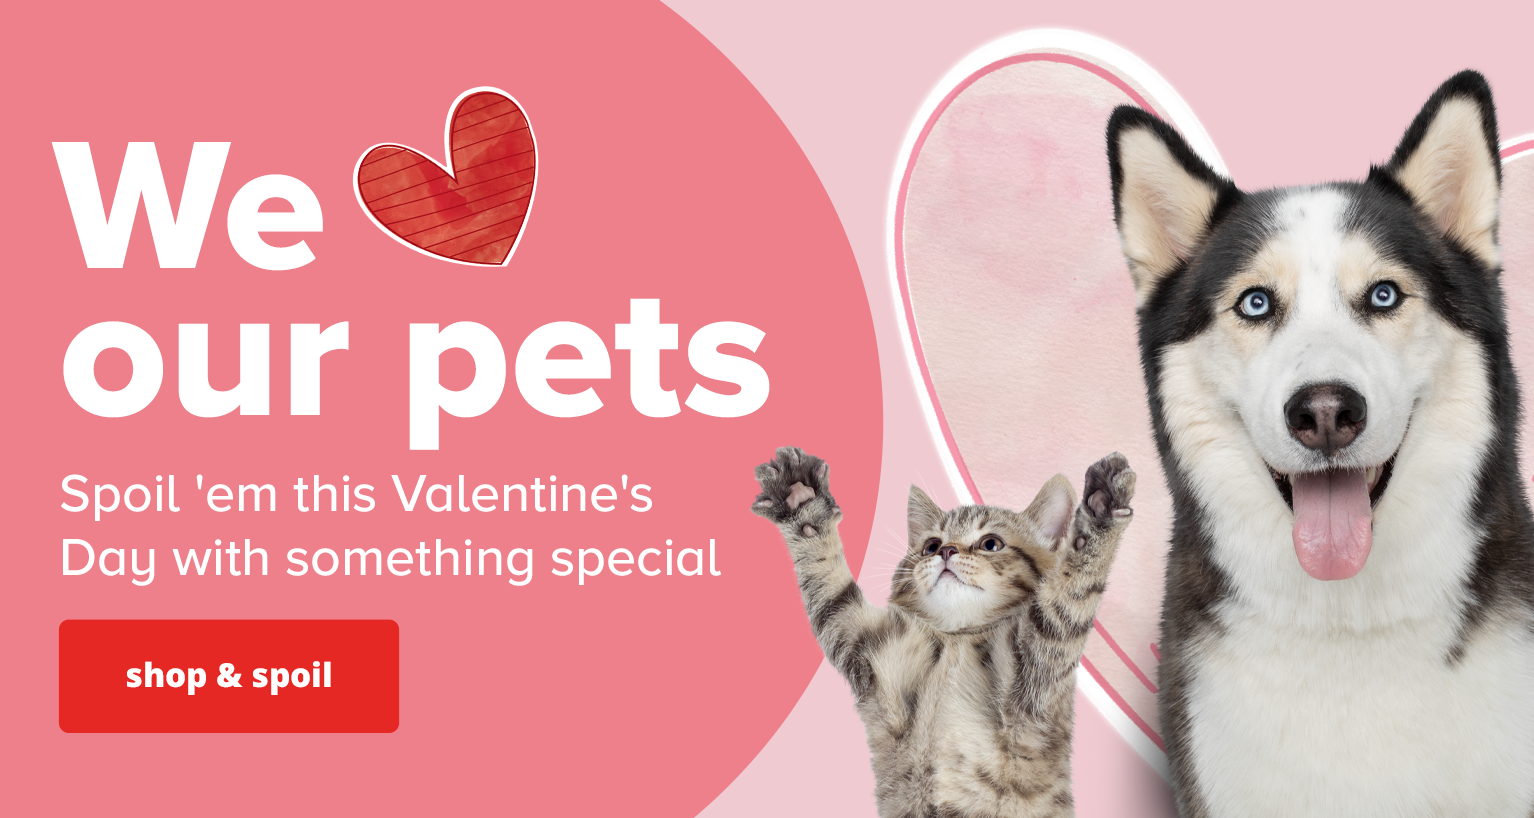 Spoil 'em this Valentine's Day with something special.